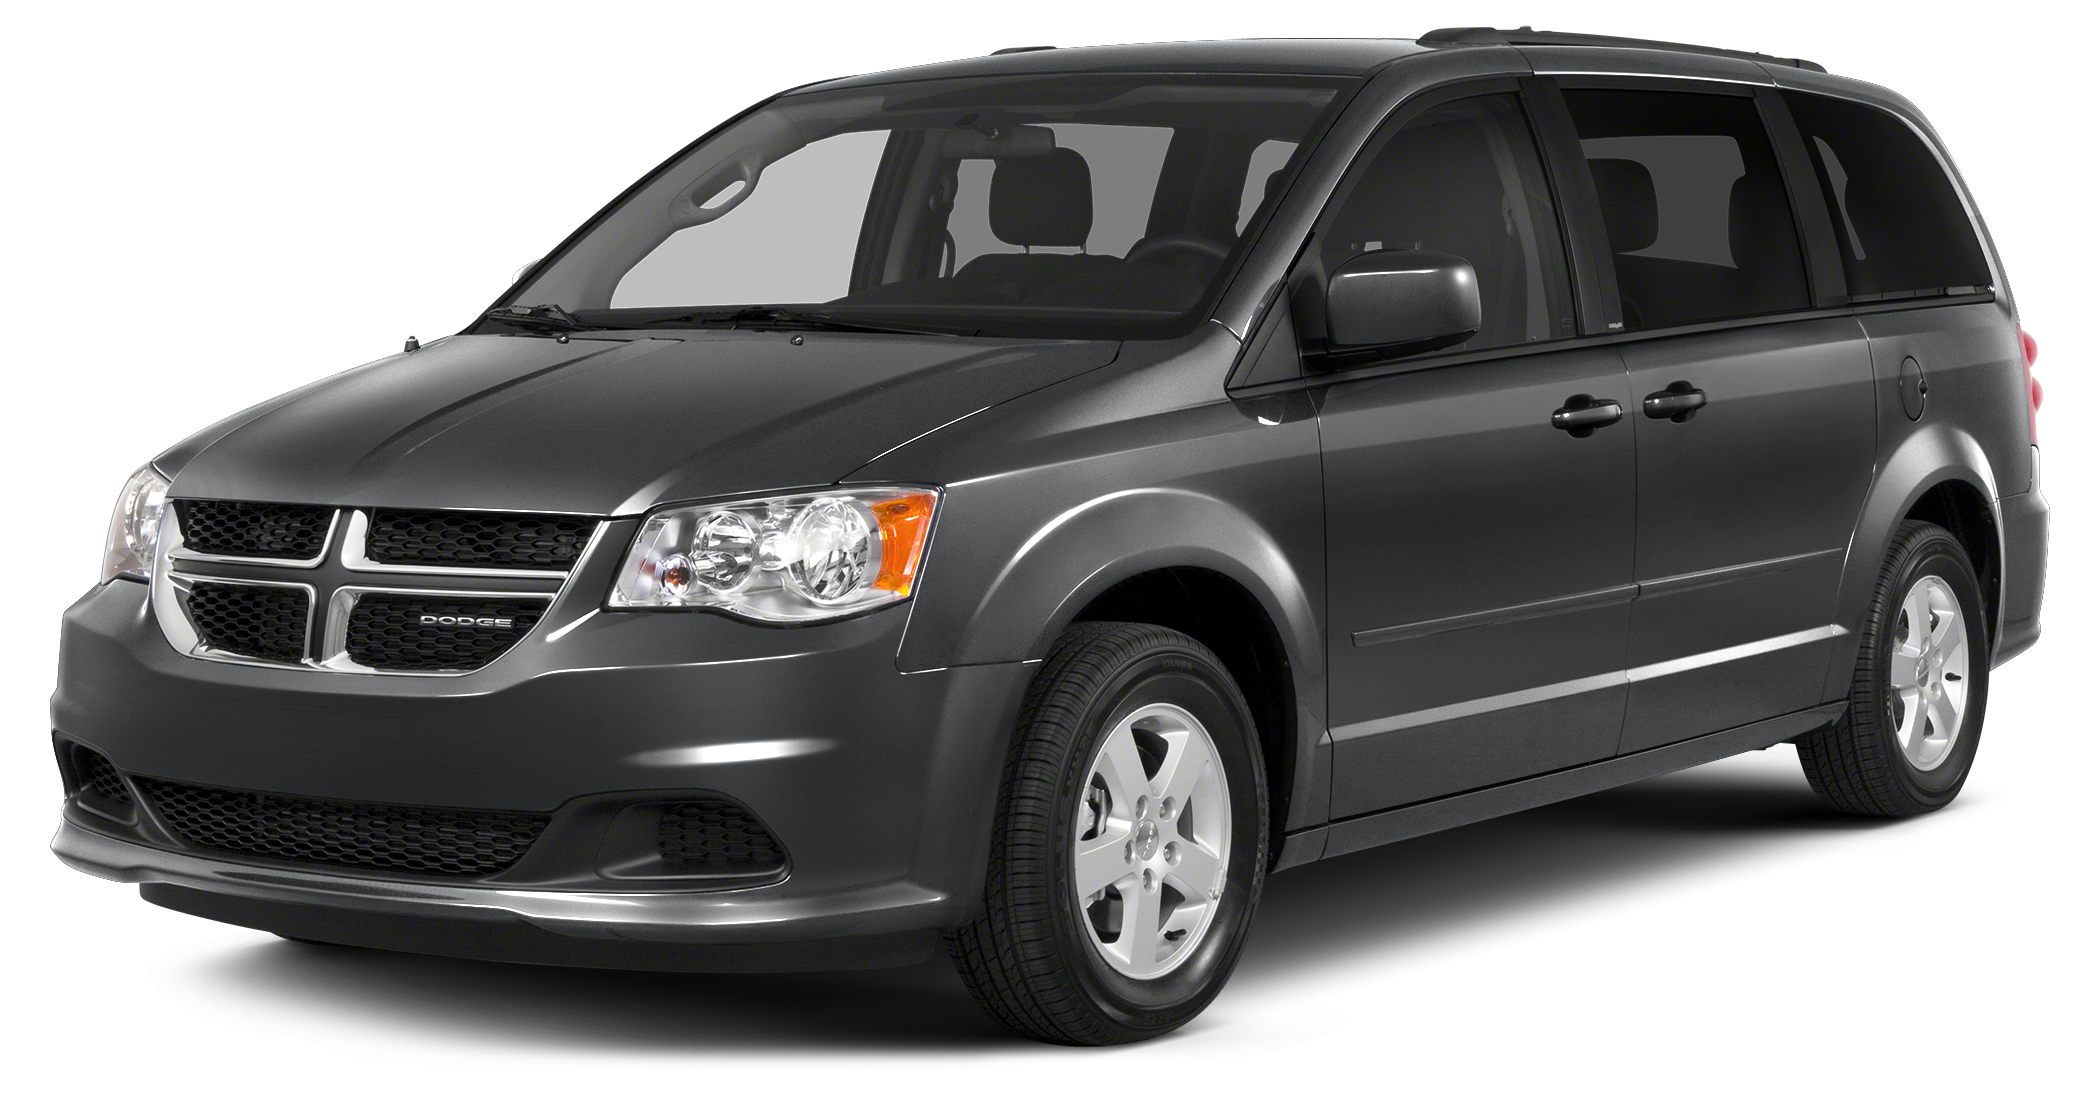 2012 Dodge Grand Caravan SXT WE SELL OUR VEHICLES AT WHOLESALE PRICES AND STAND BEHIND OUR CARS